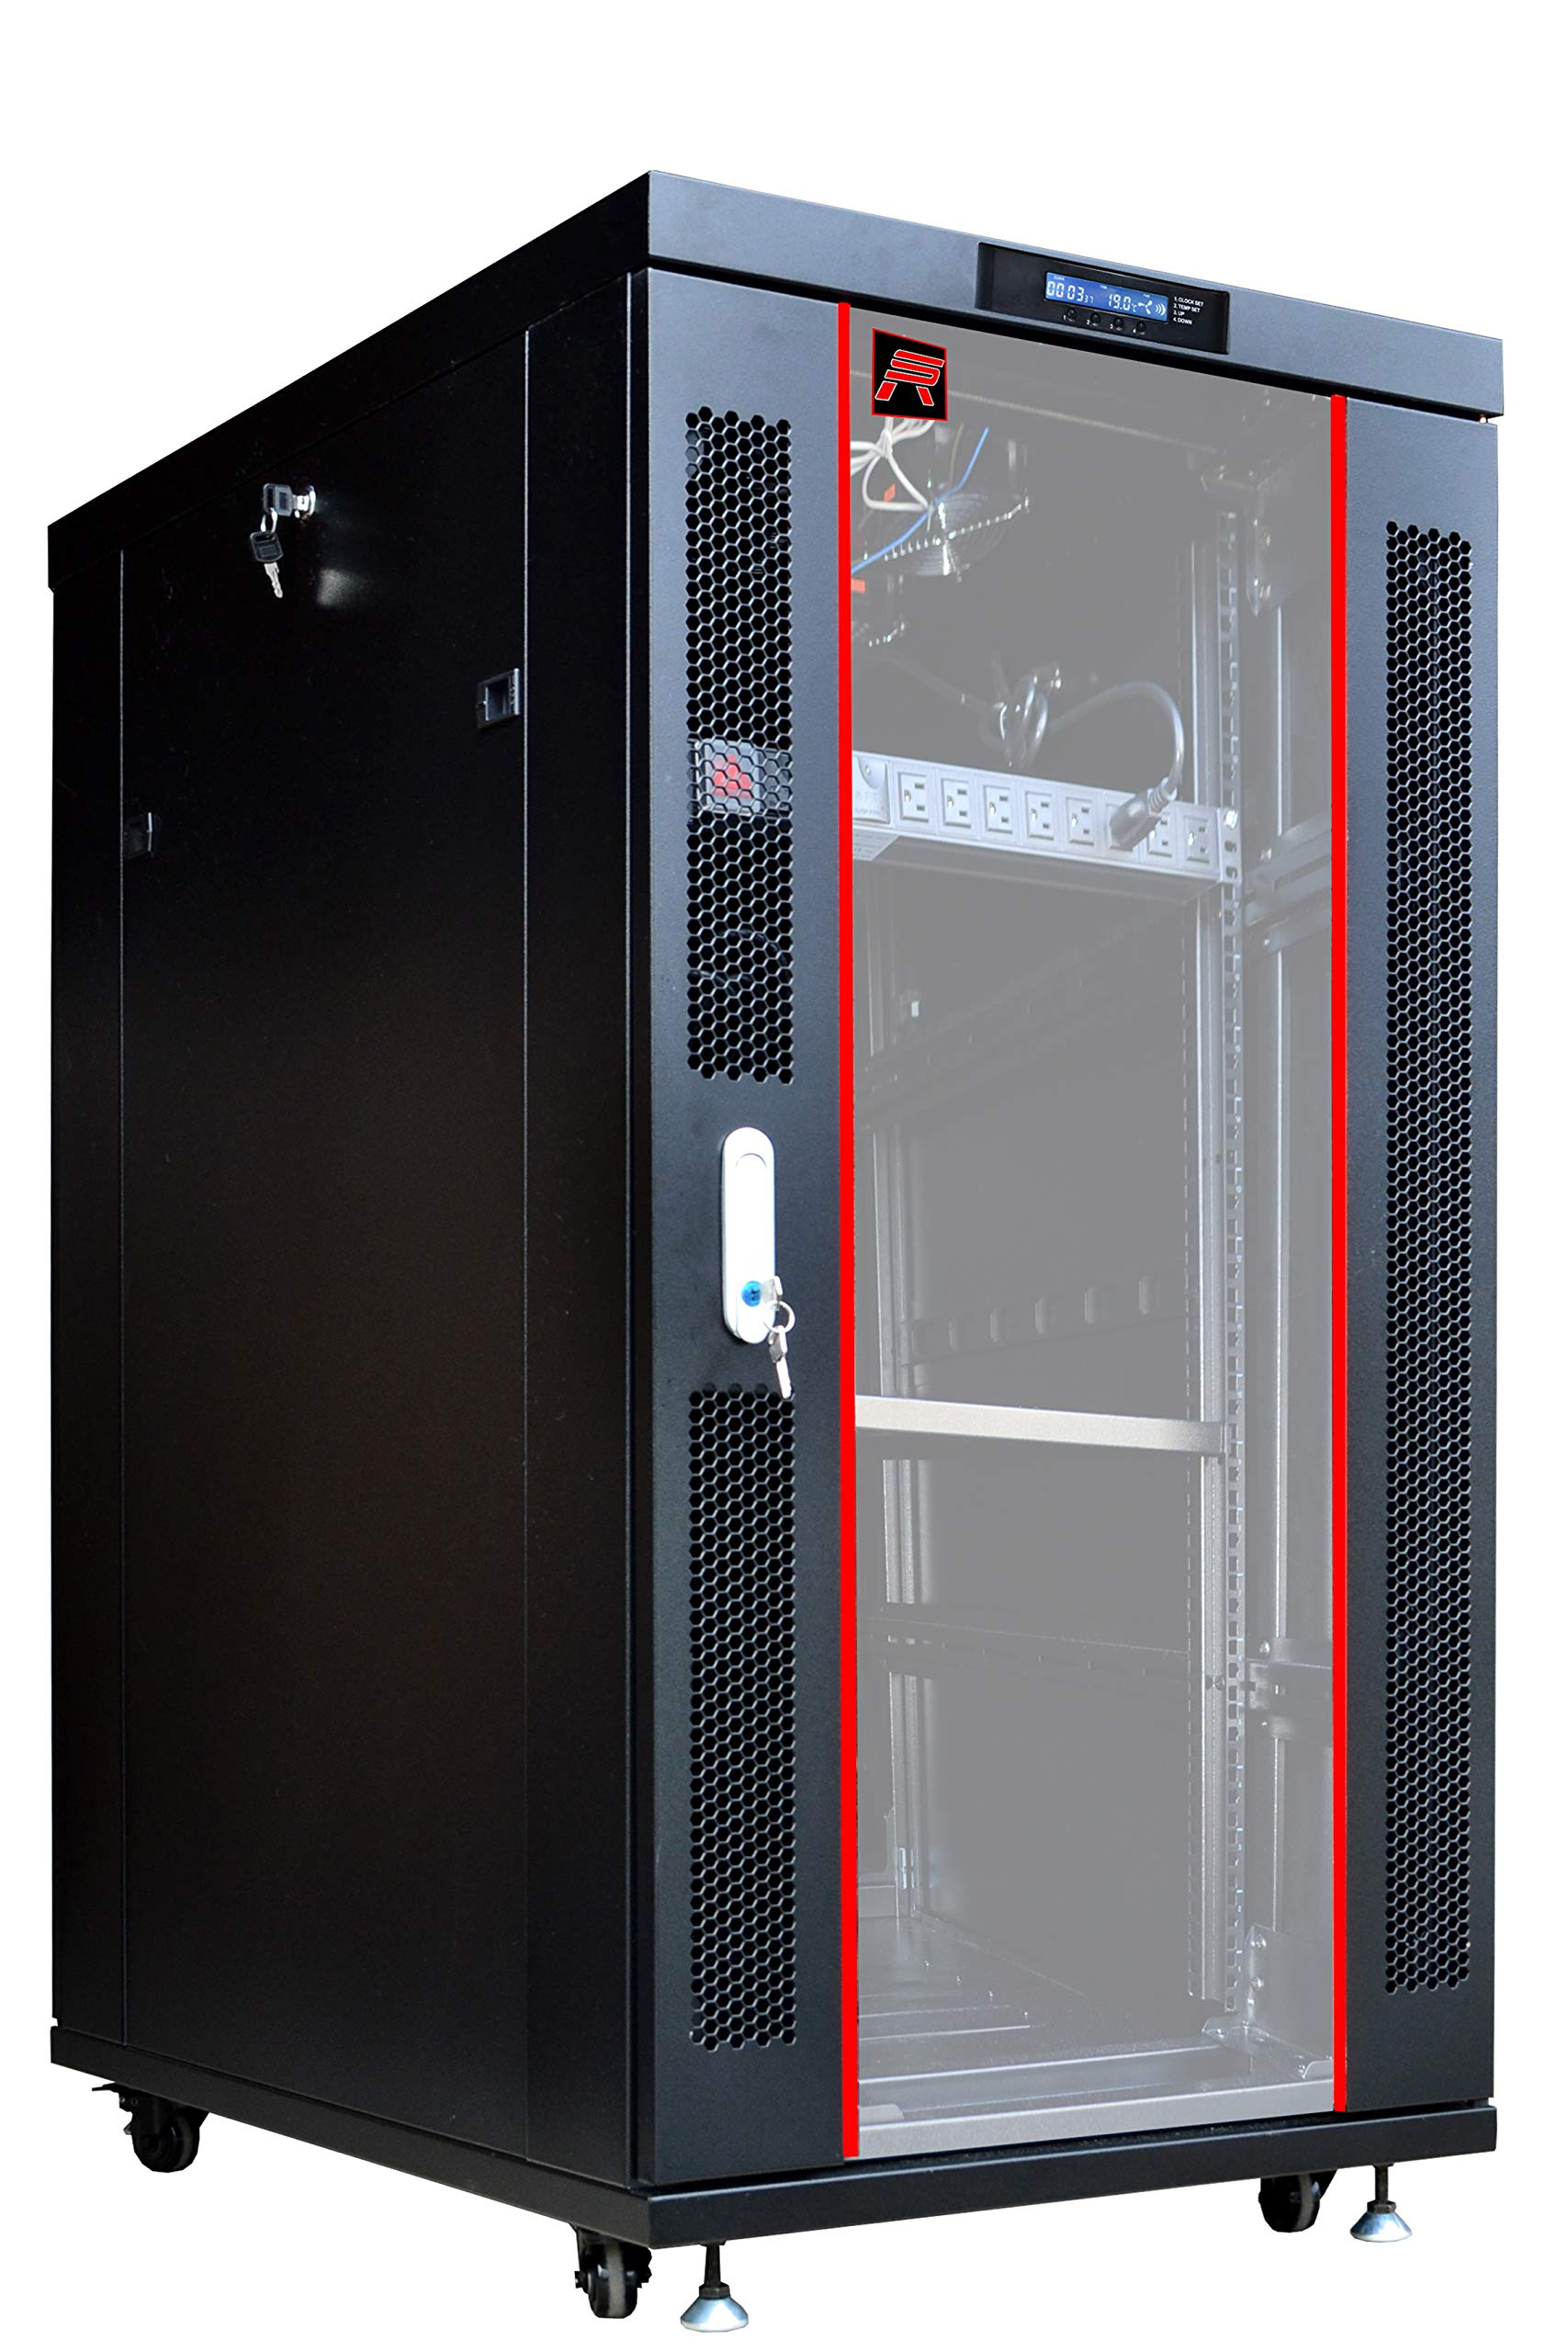 22U 32'' Deep IT Free Standing Server Rack Cabinet Enclosure. Temperature Control System, Casters, LCD-Screen, PDU and Other Accessories Included - Over $ 150 Savings